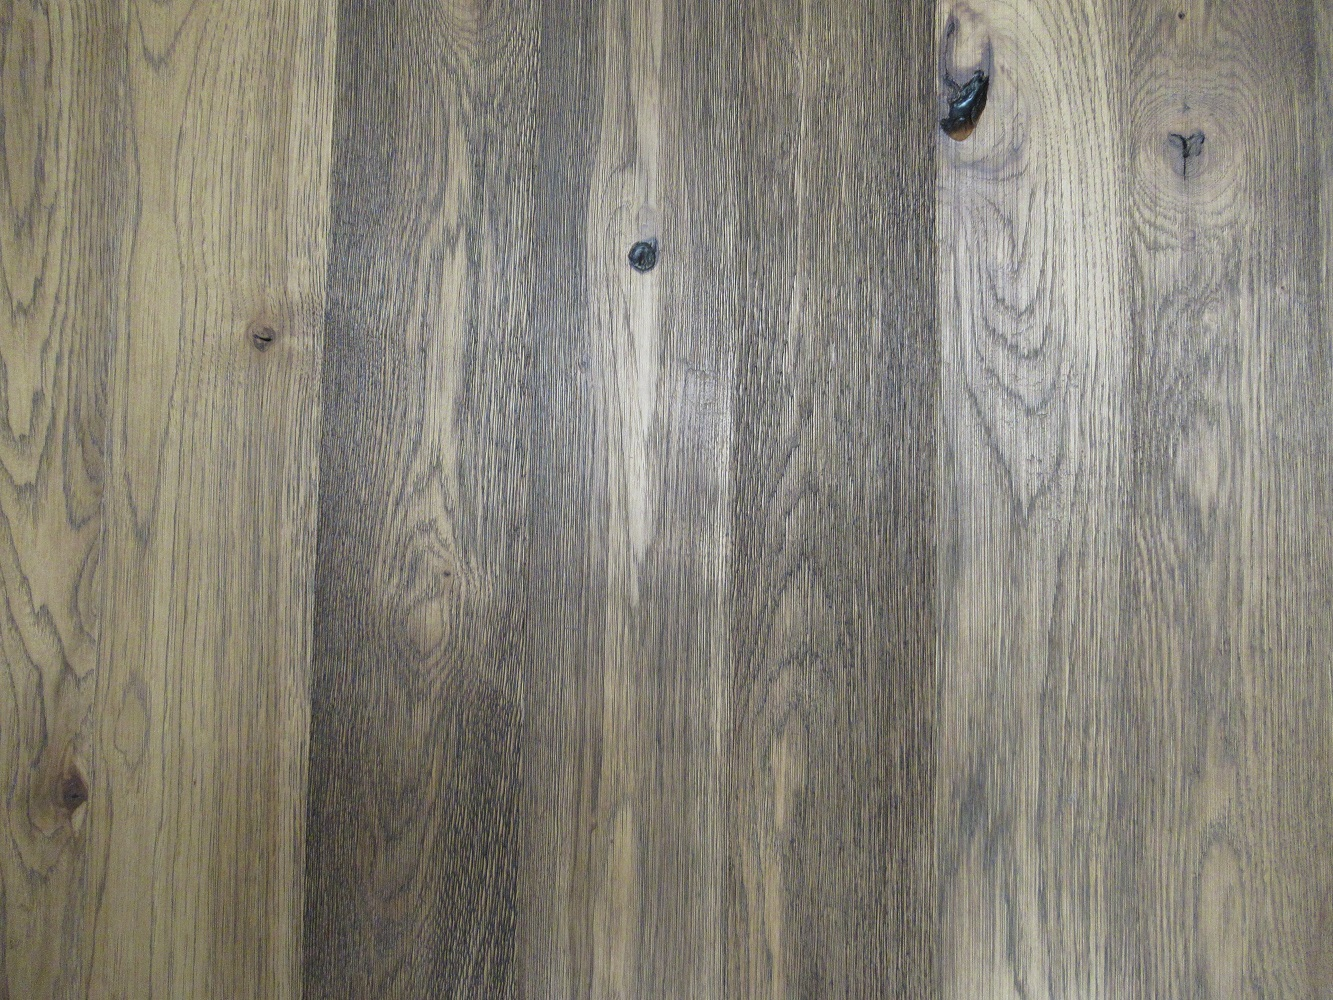 Wood Flooring - Wired Brush Flooring - Vadnais Heights, MN